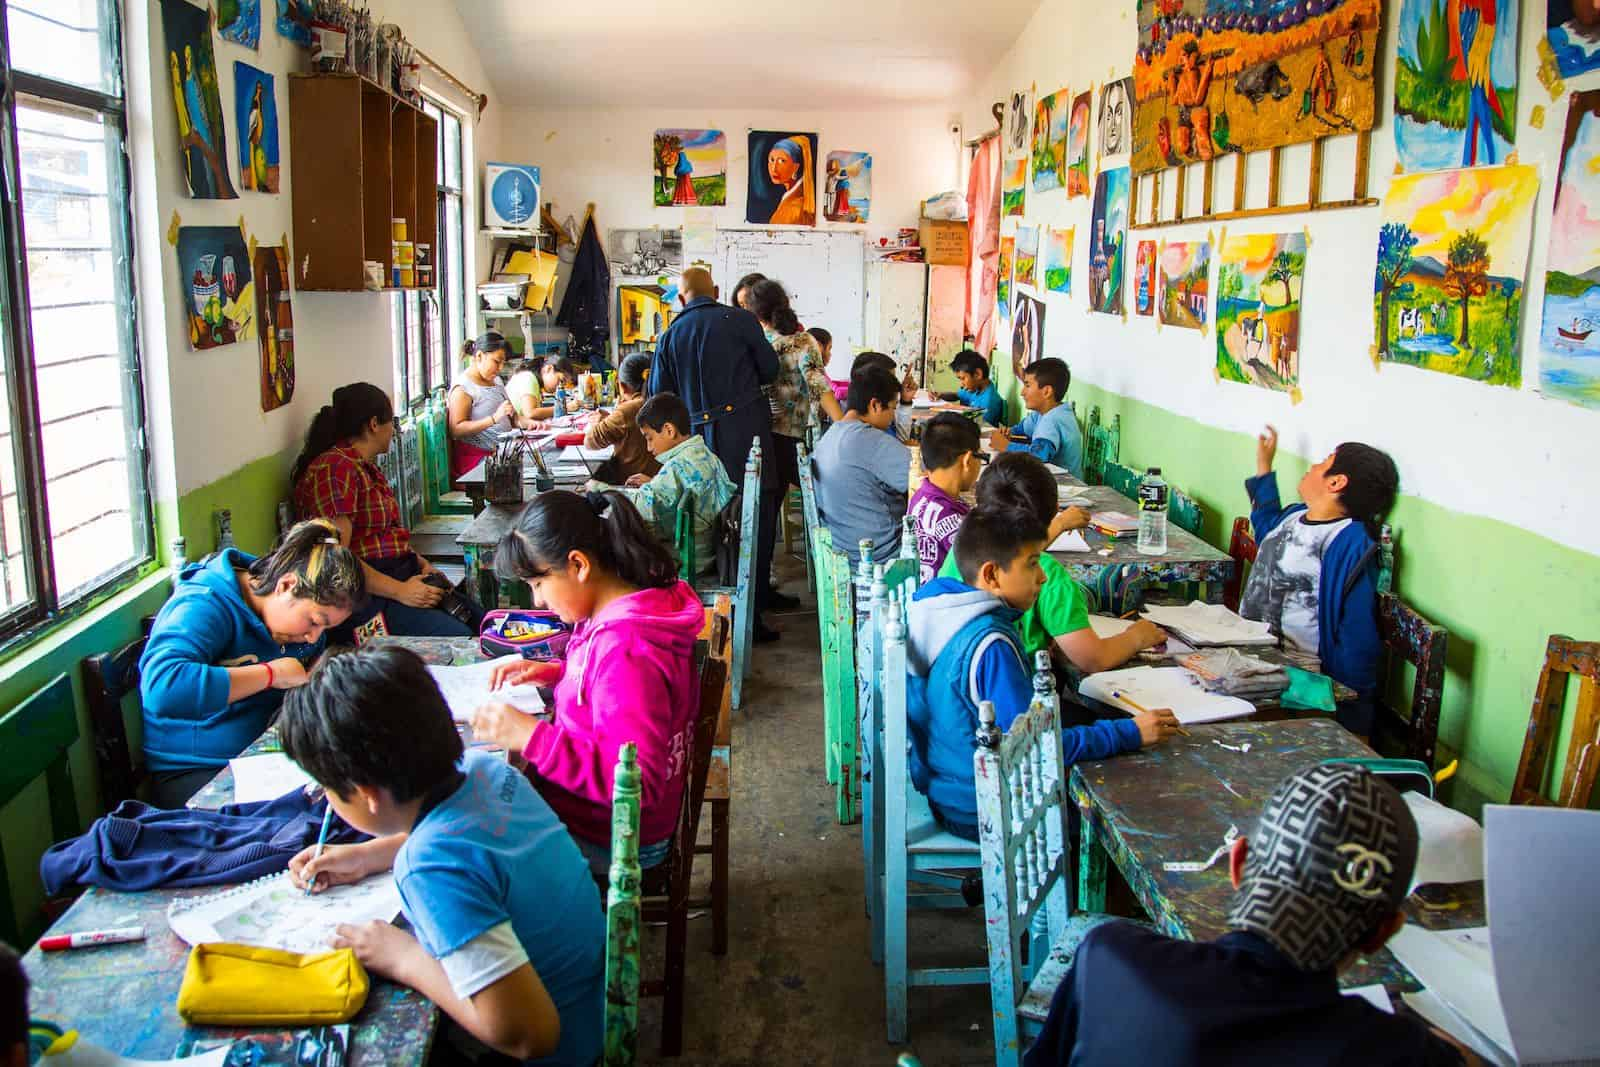 In a classroom full of brightly colored chairs and tables, children paint on white paper. The walls of the classroom are covered in paintings.